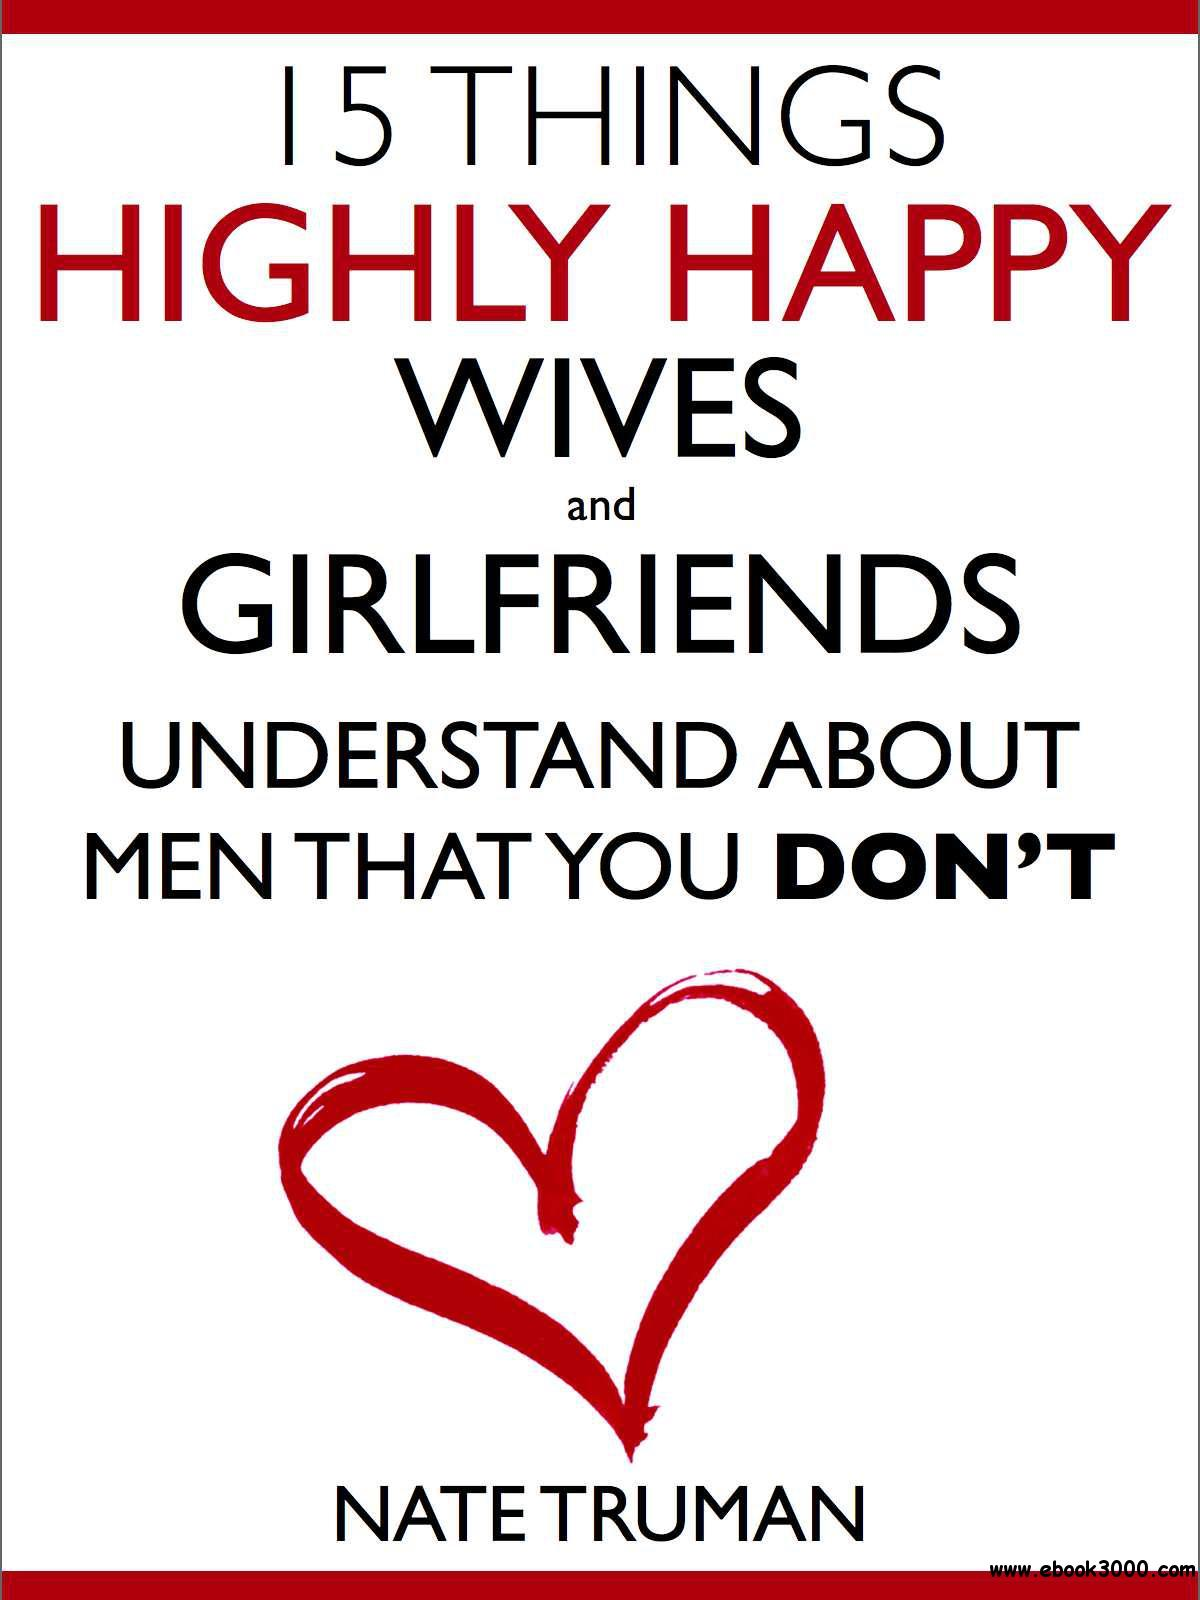 15 Things Highly Happy Wives and Girlfriends Understand About Men That You Don't free download